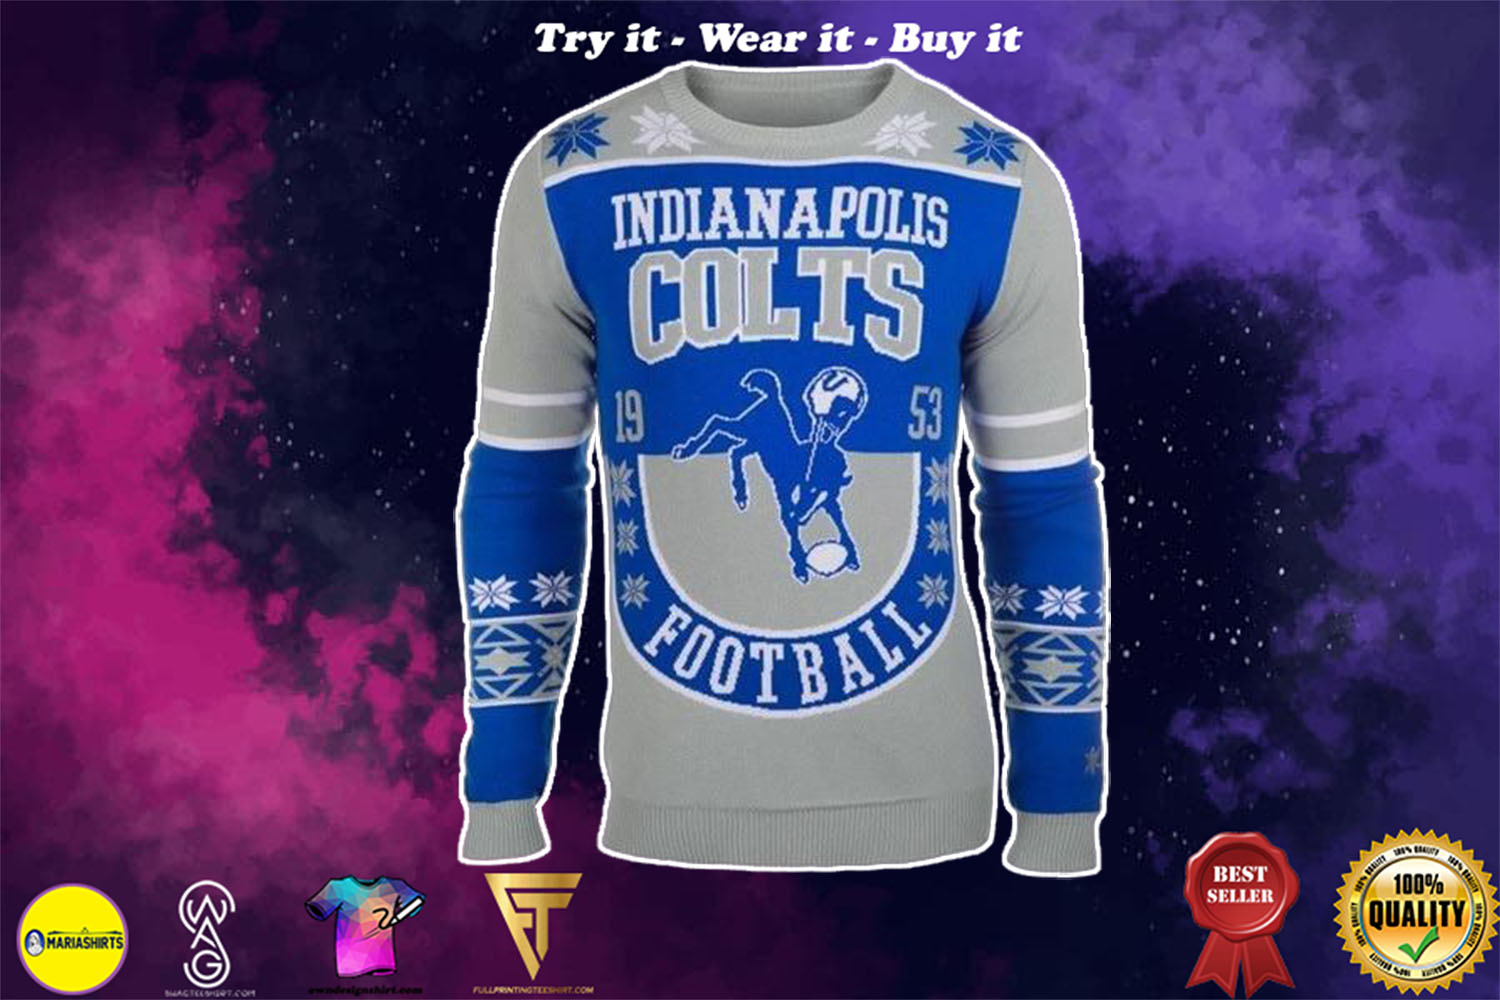 [special edition] indianapolis colts national football league ugly christmas sweater - maria